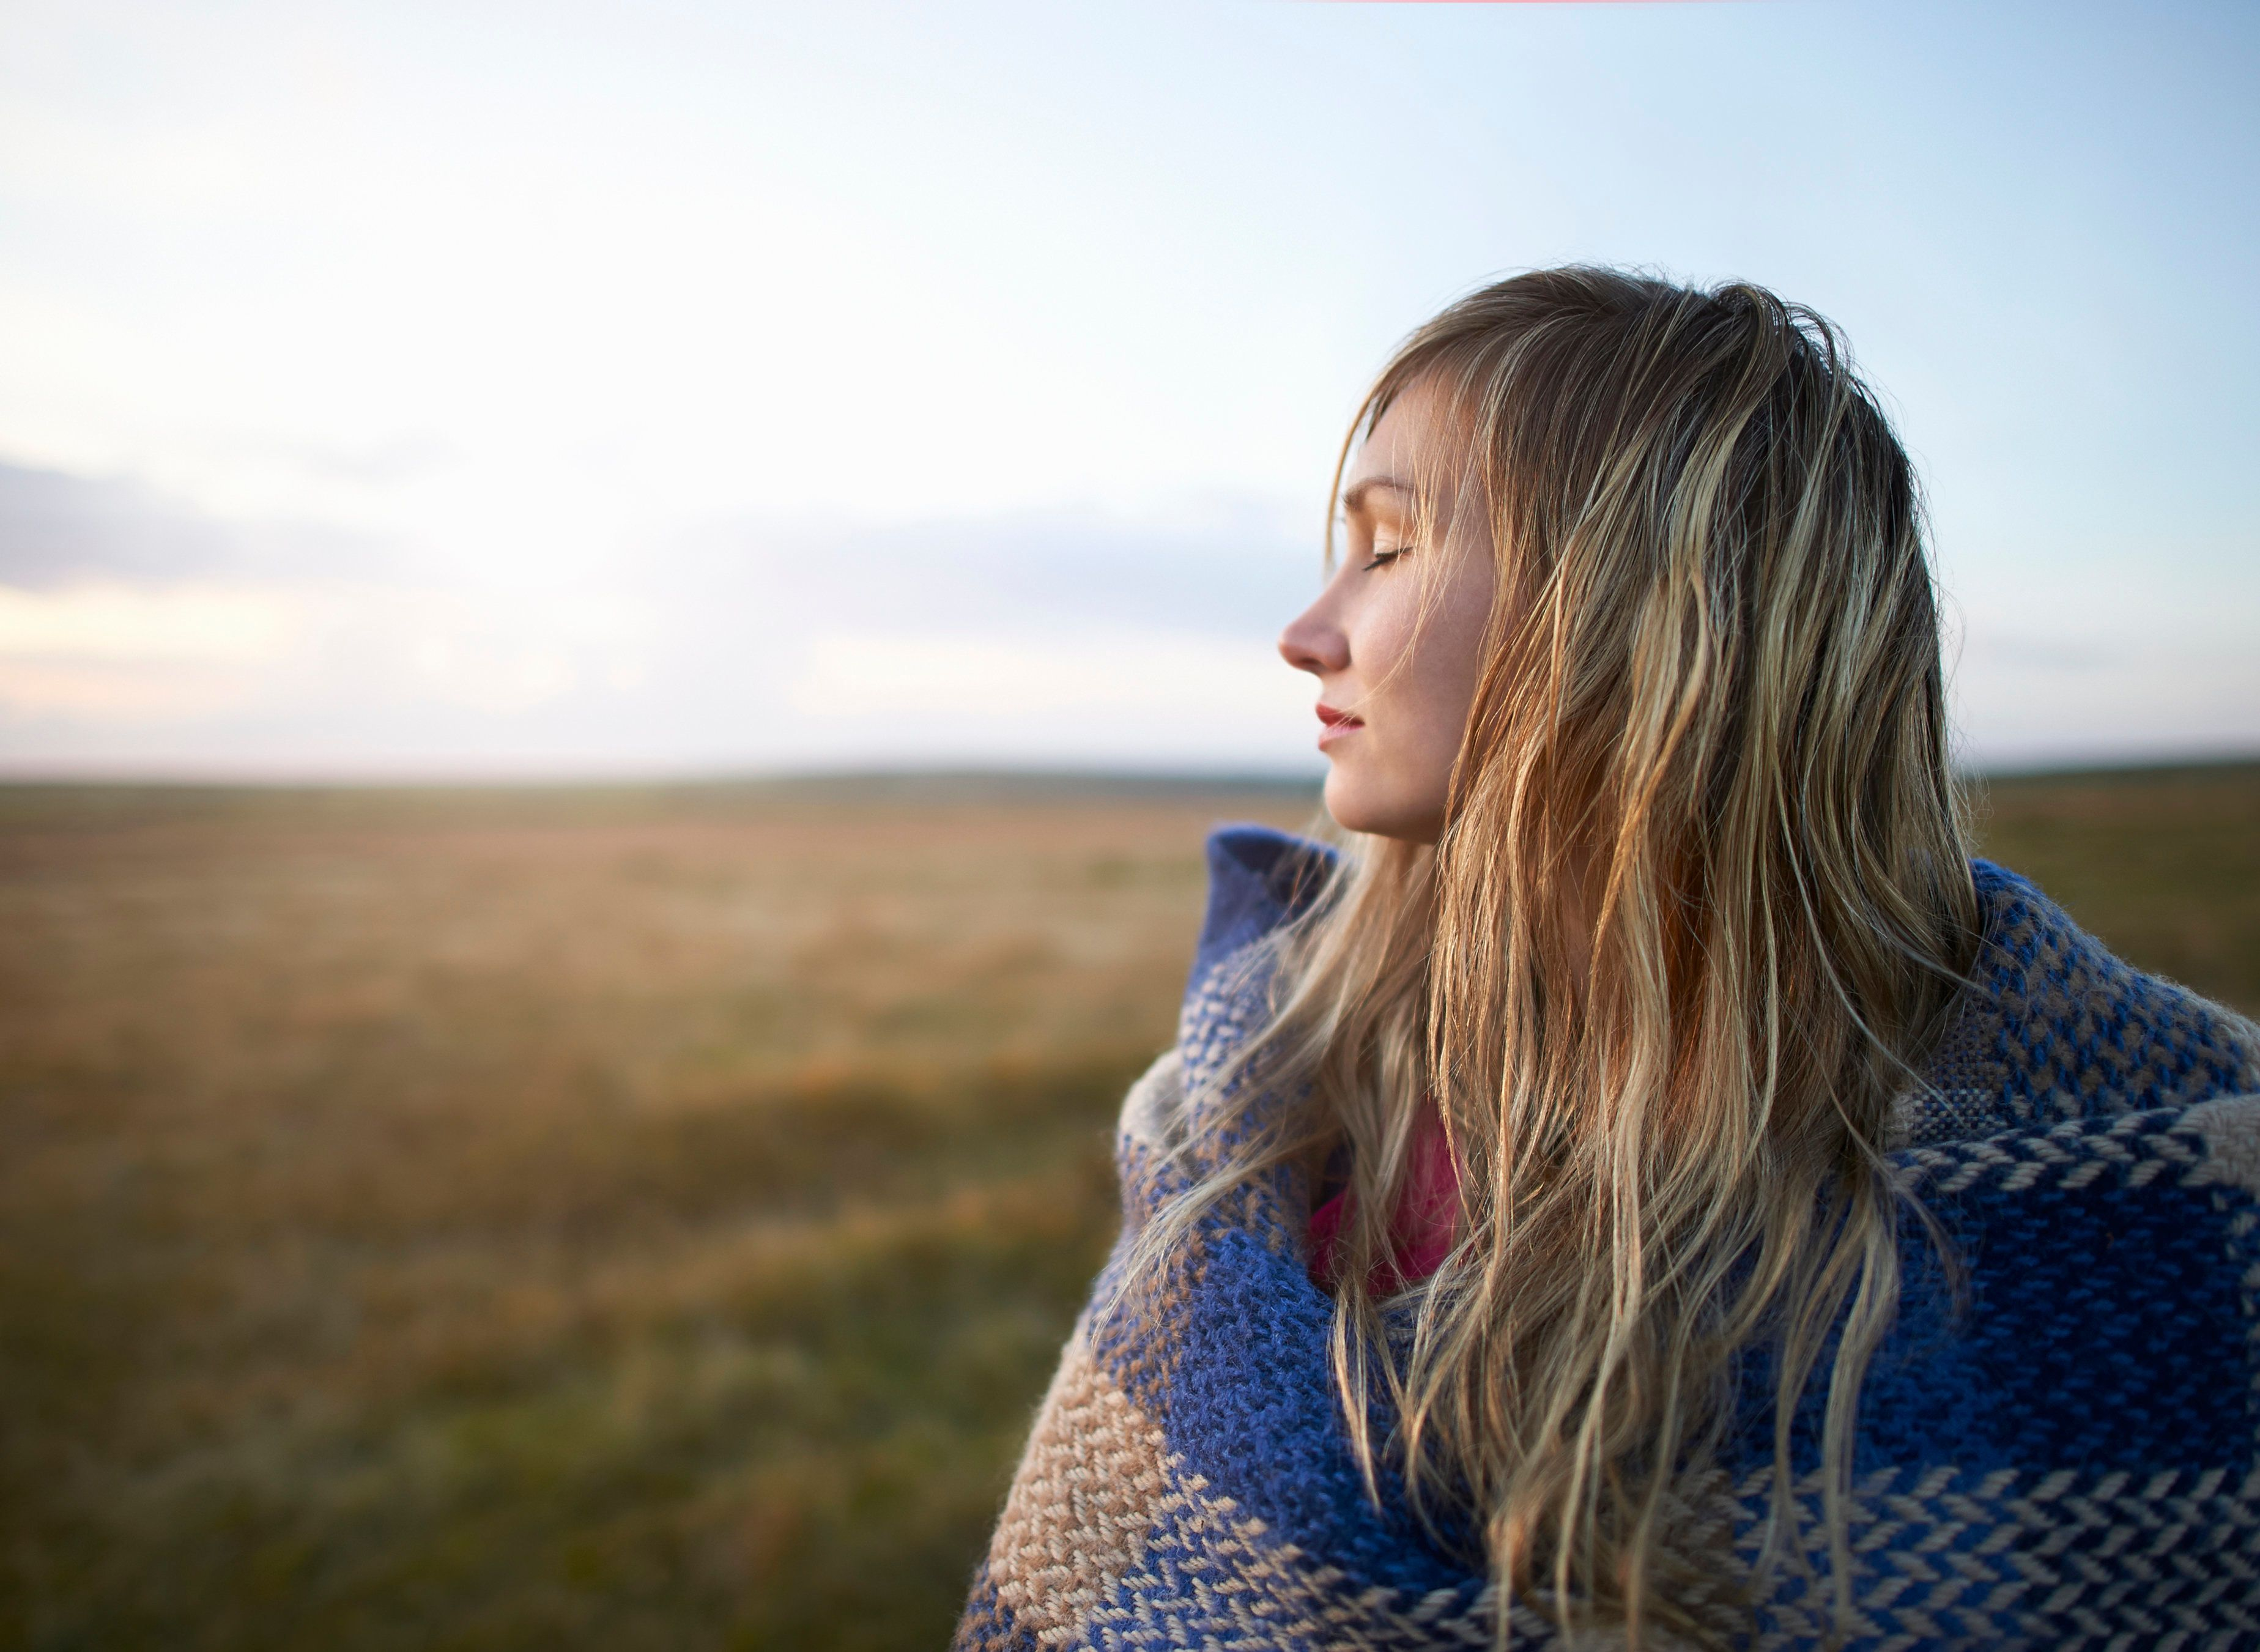 A woman stands with her eyes closed and wrapped in a blanket on a moorland.